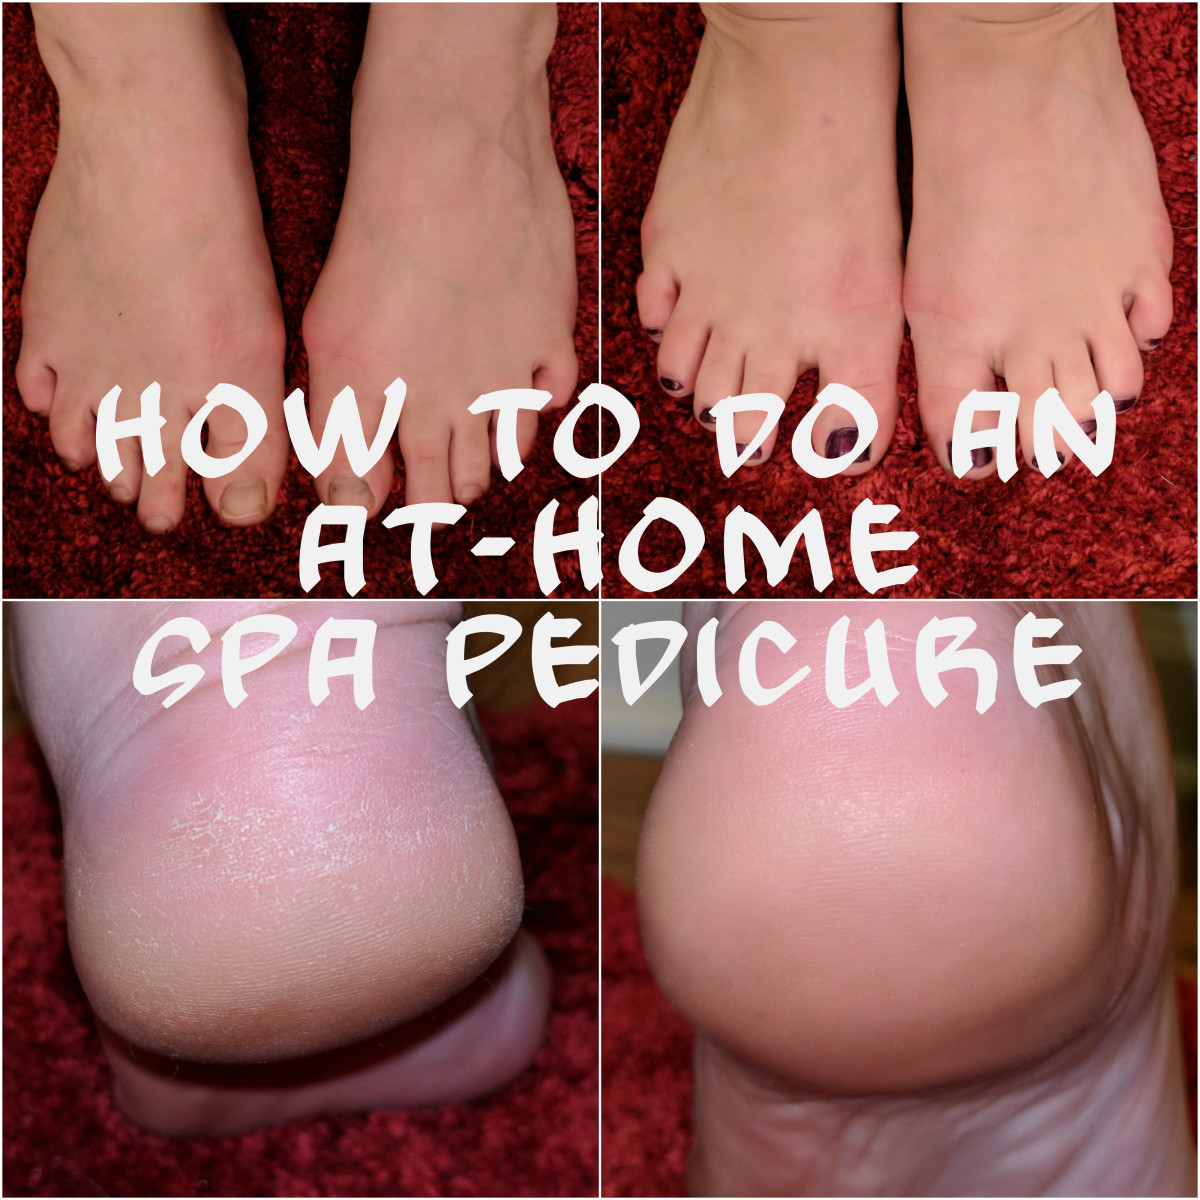 How to Do a Spa Pedicure at Home